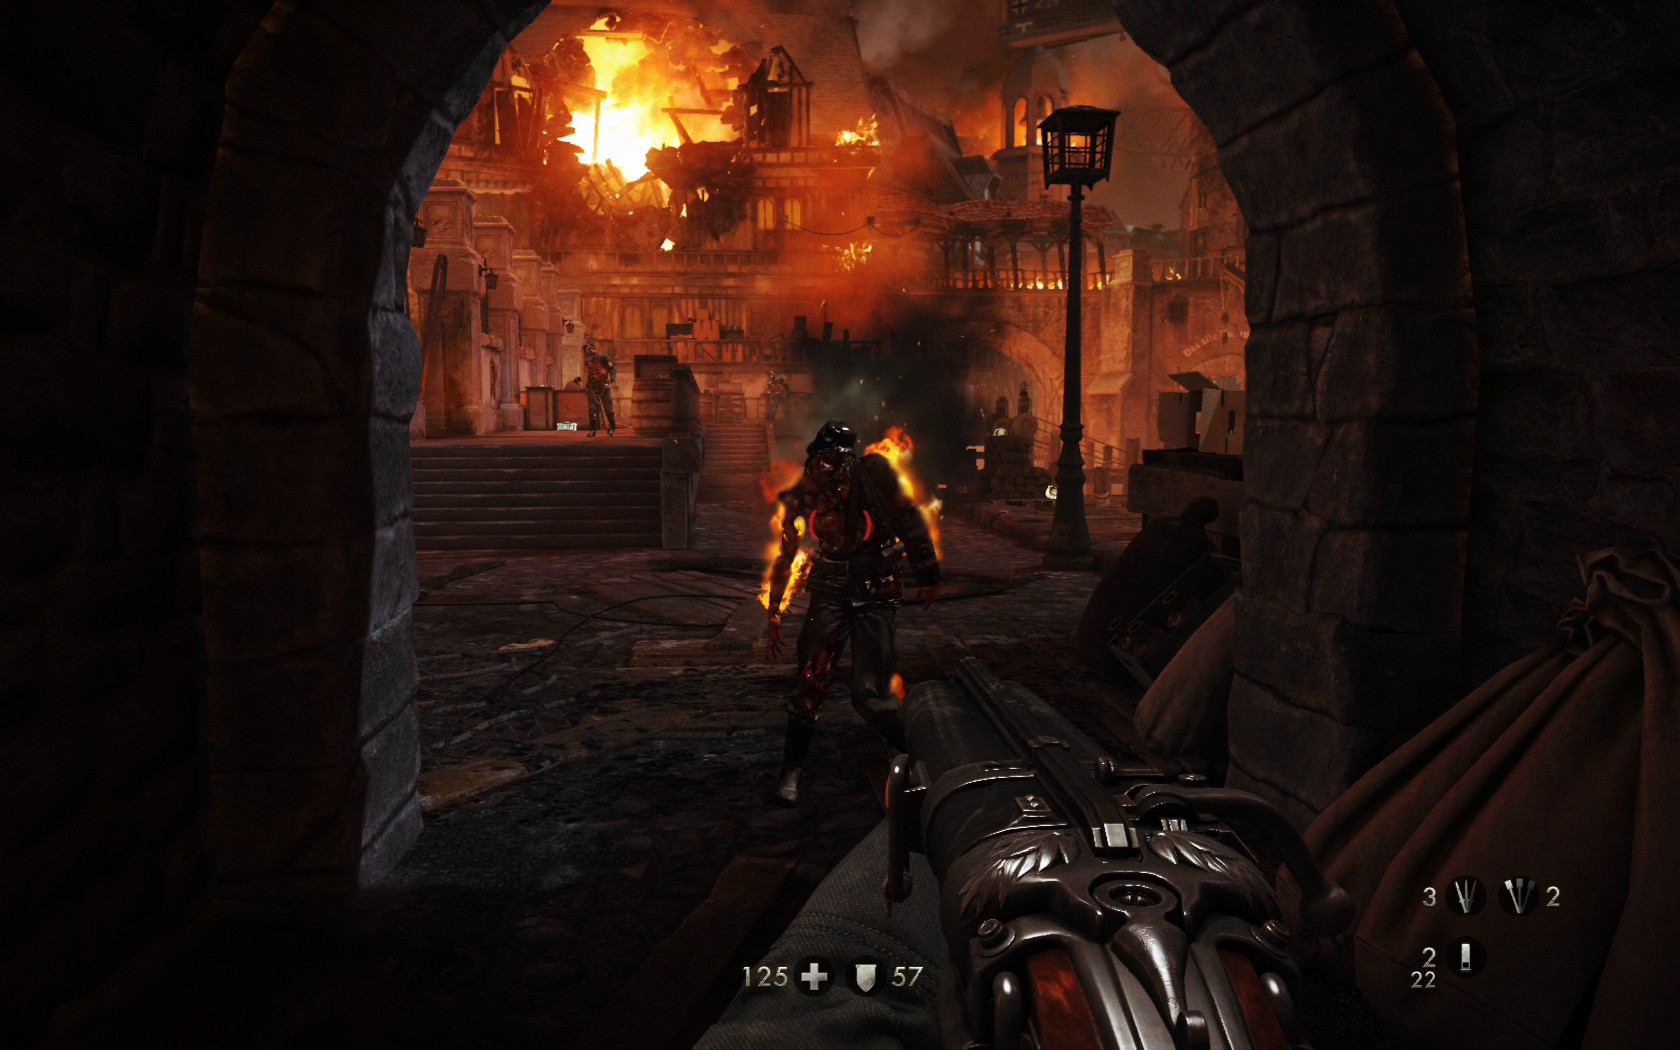 Wolfenstein: The Old Blood - s trubkou proti nacistům 108722